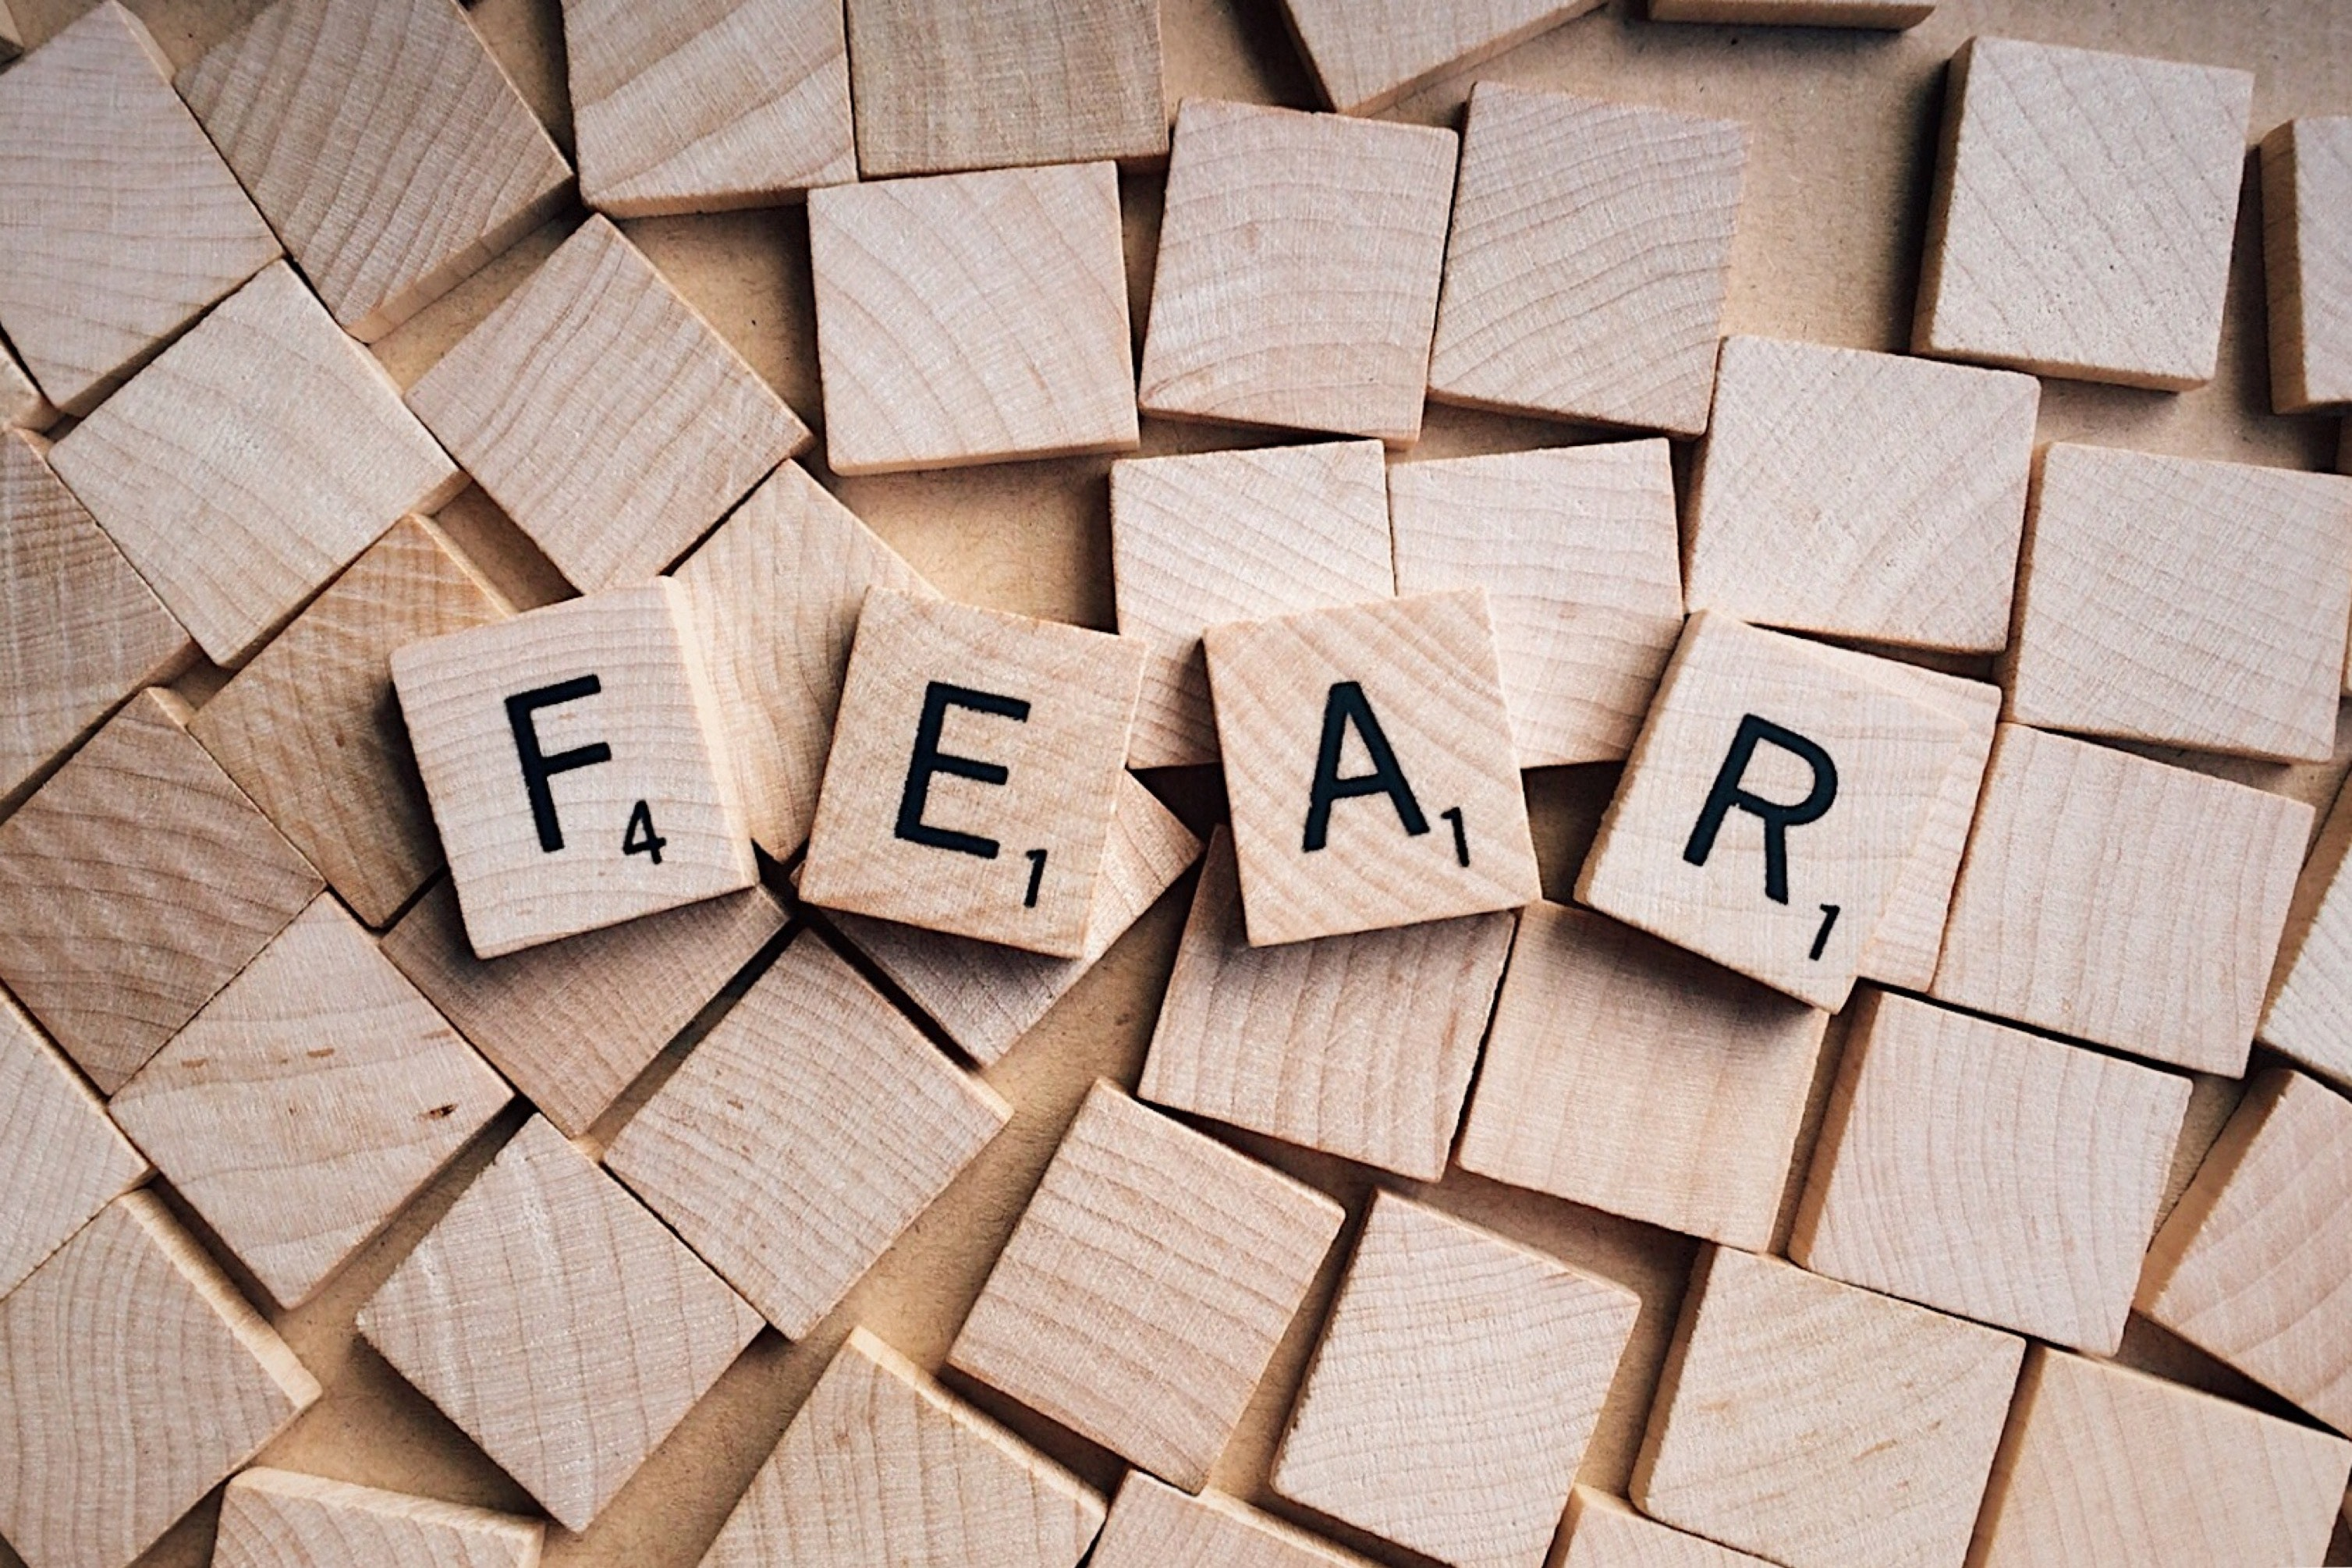 What am I (and perhaps you) afraid of? Part 1